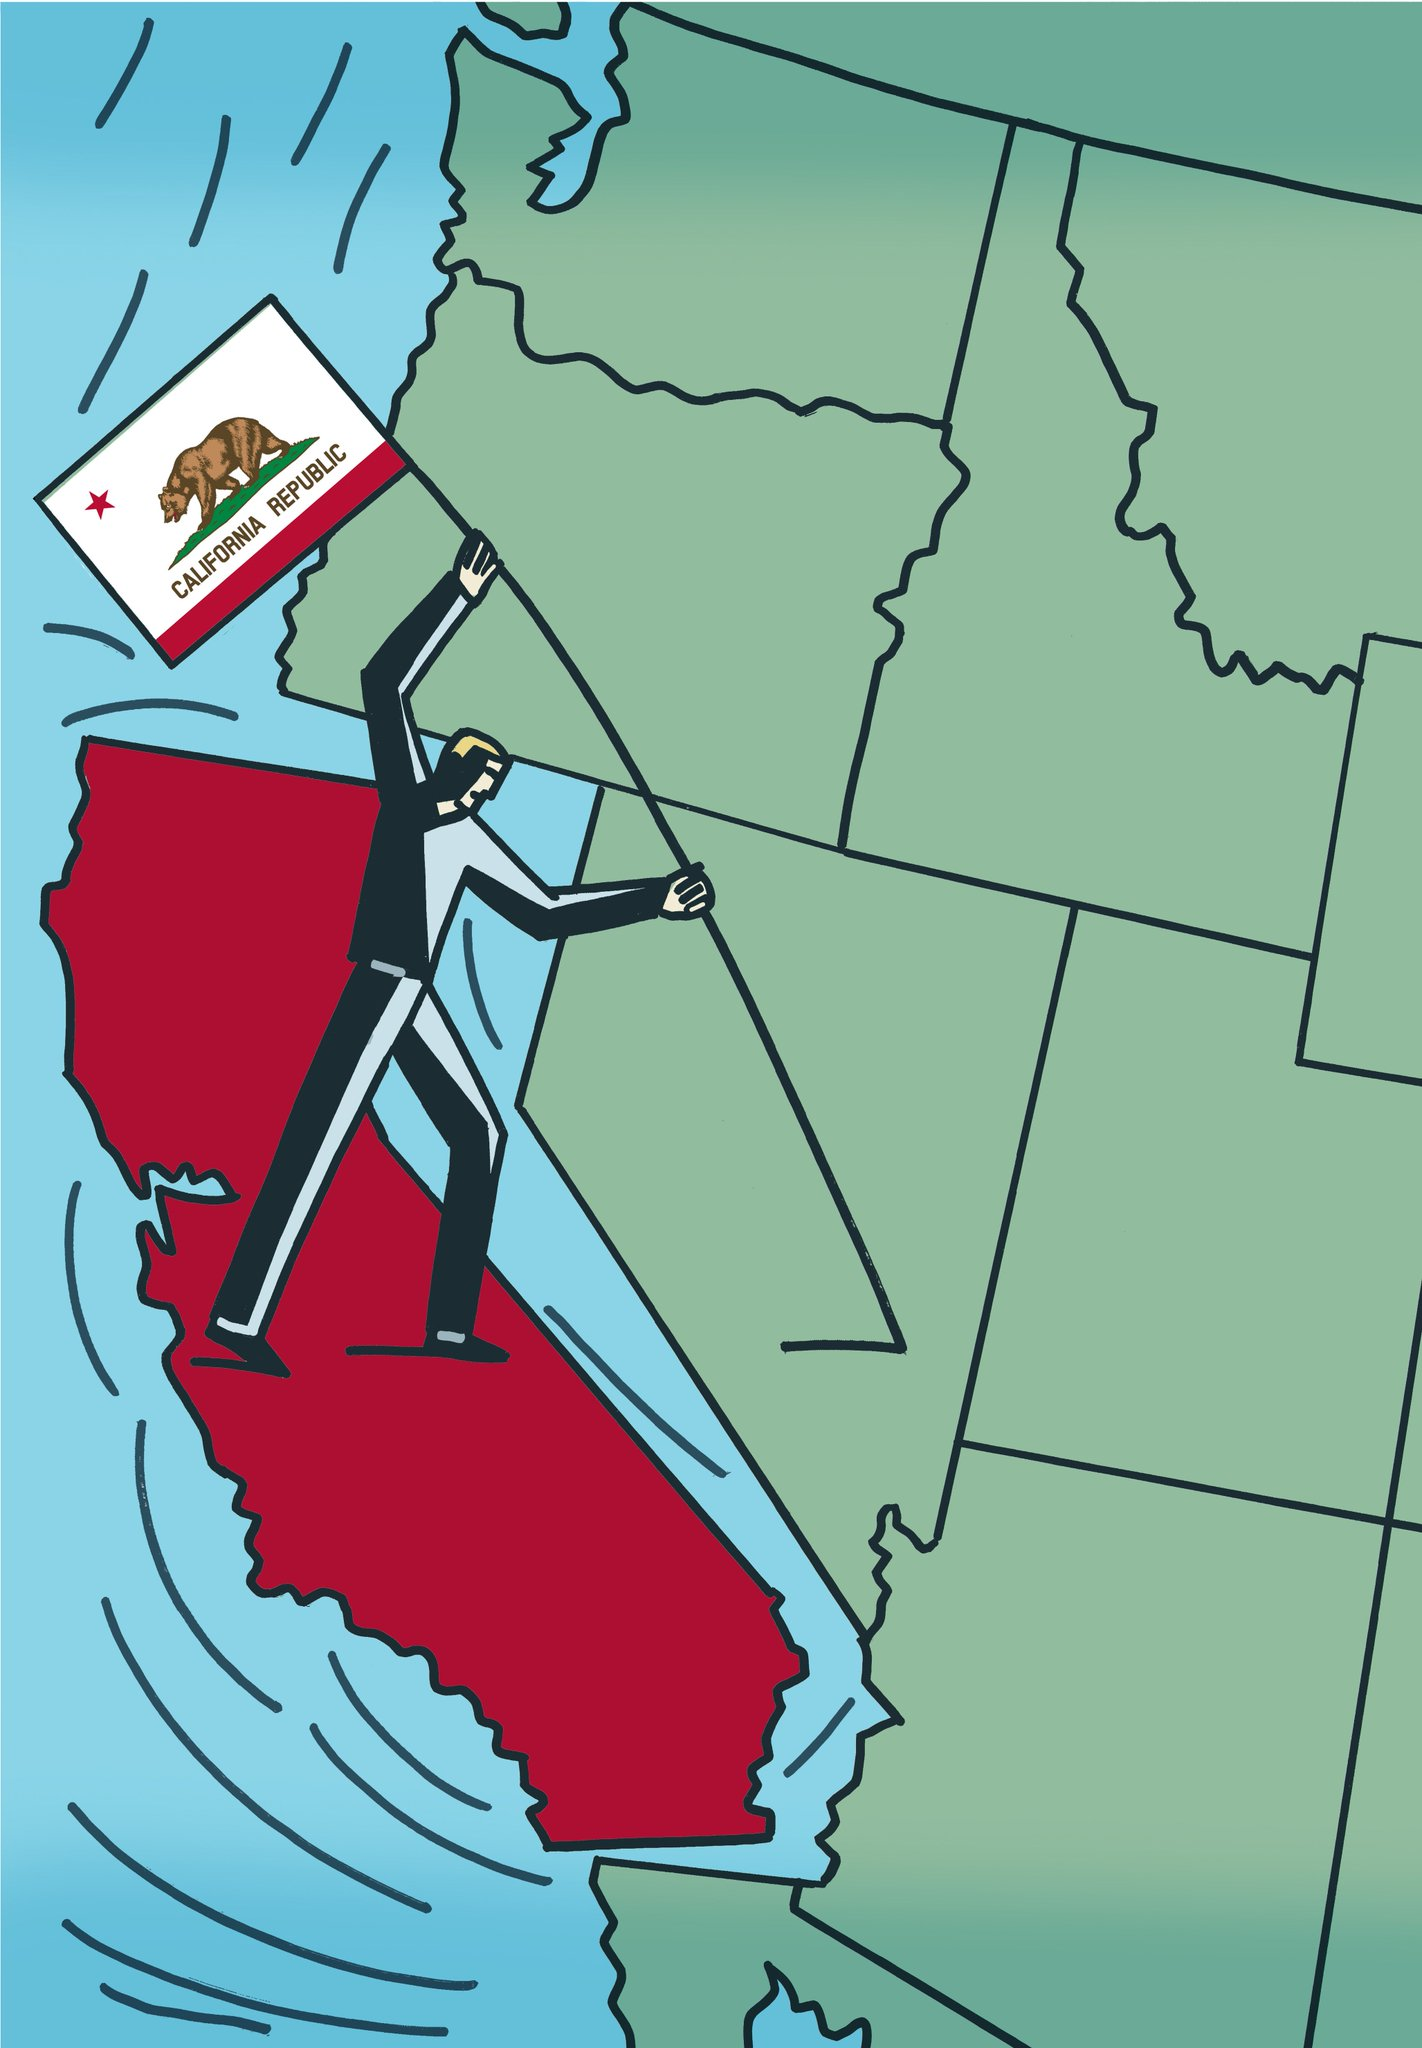 Group files another 'Calexit' initiative in push for California's independence https://t.co/bJRQjrIWsI https://t.co/jCrYI9VlUO